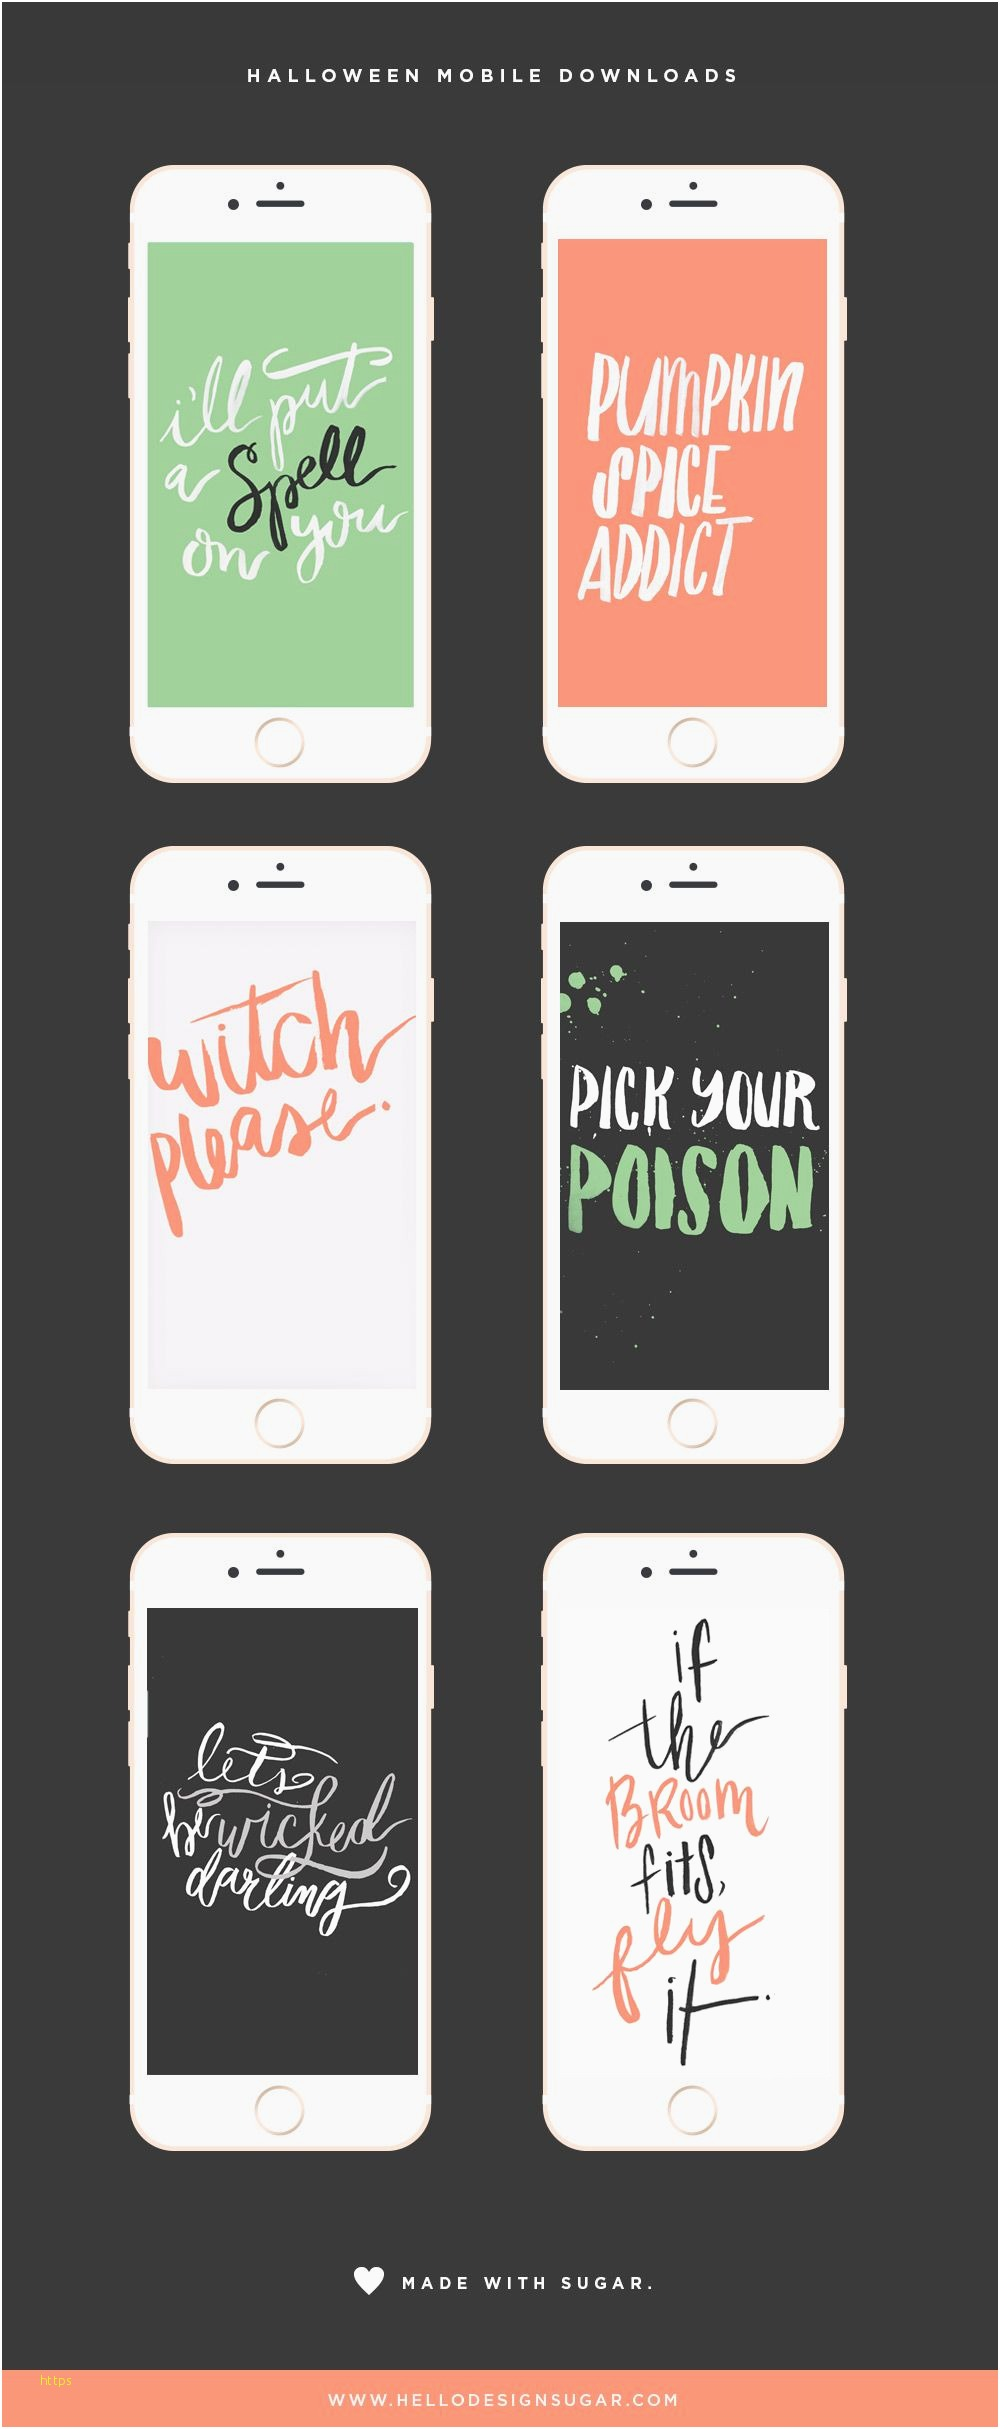 Super Cute Wallpapers Unique Dress Up Your Phone For - Iphone , HD Wallpaper & Backgrounds